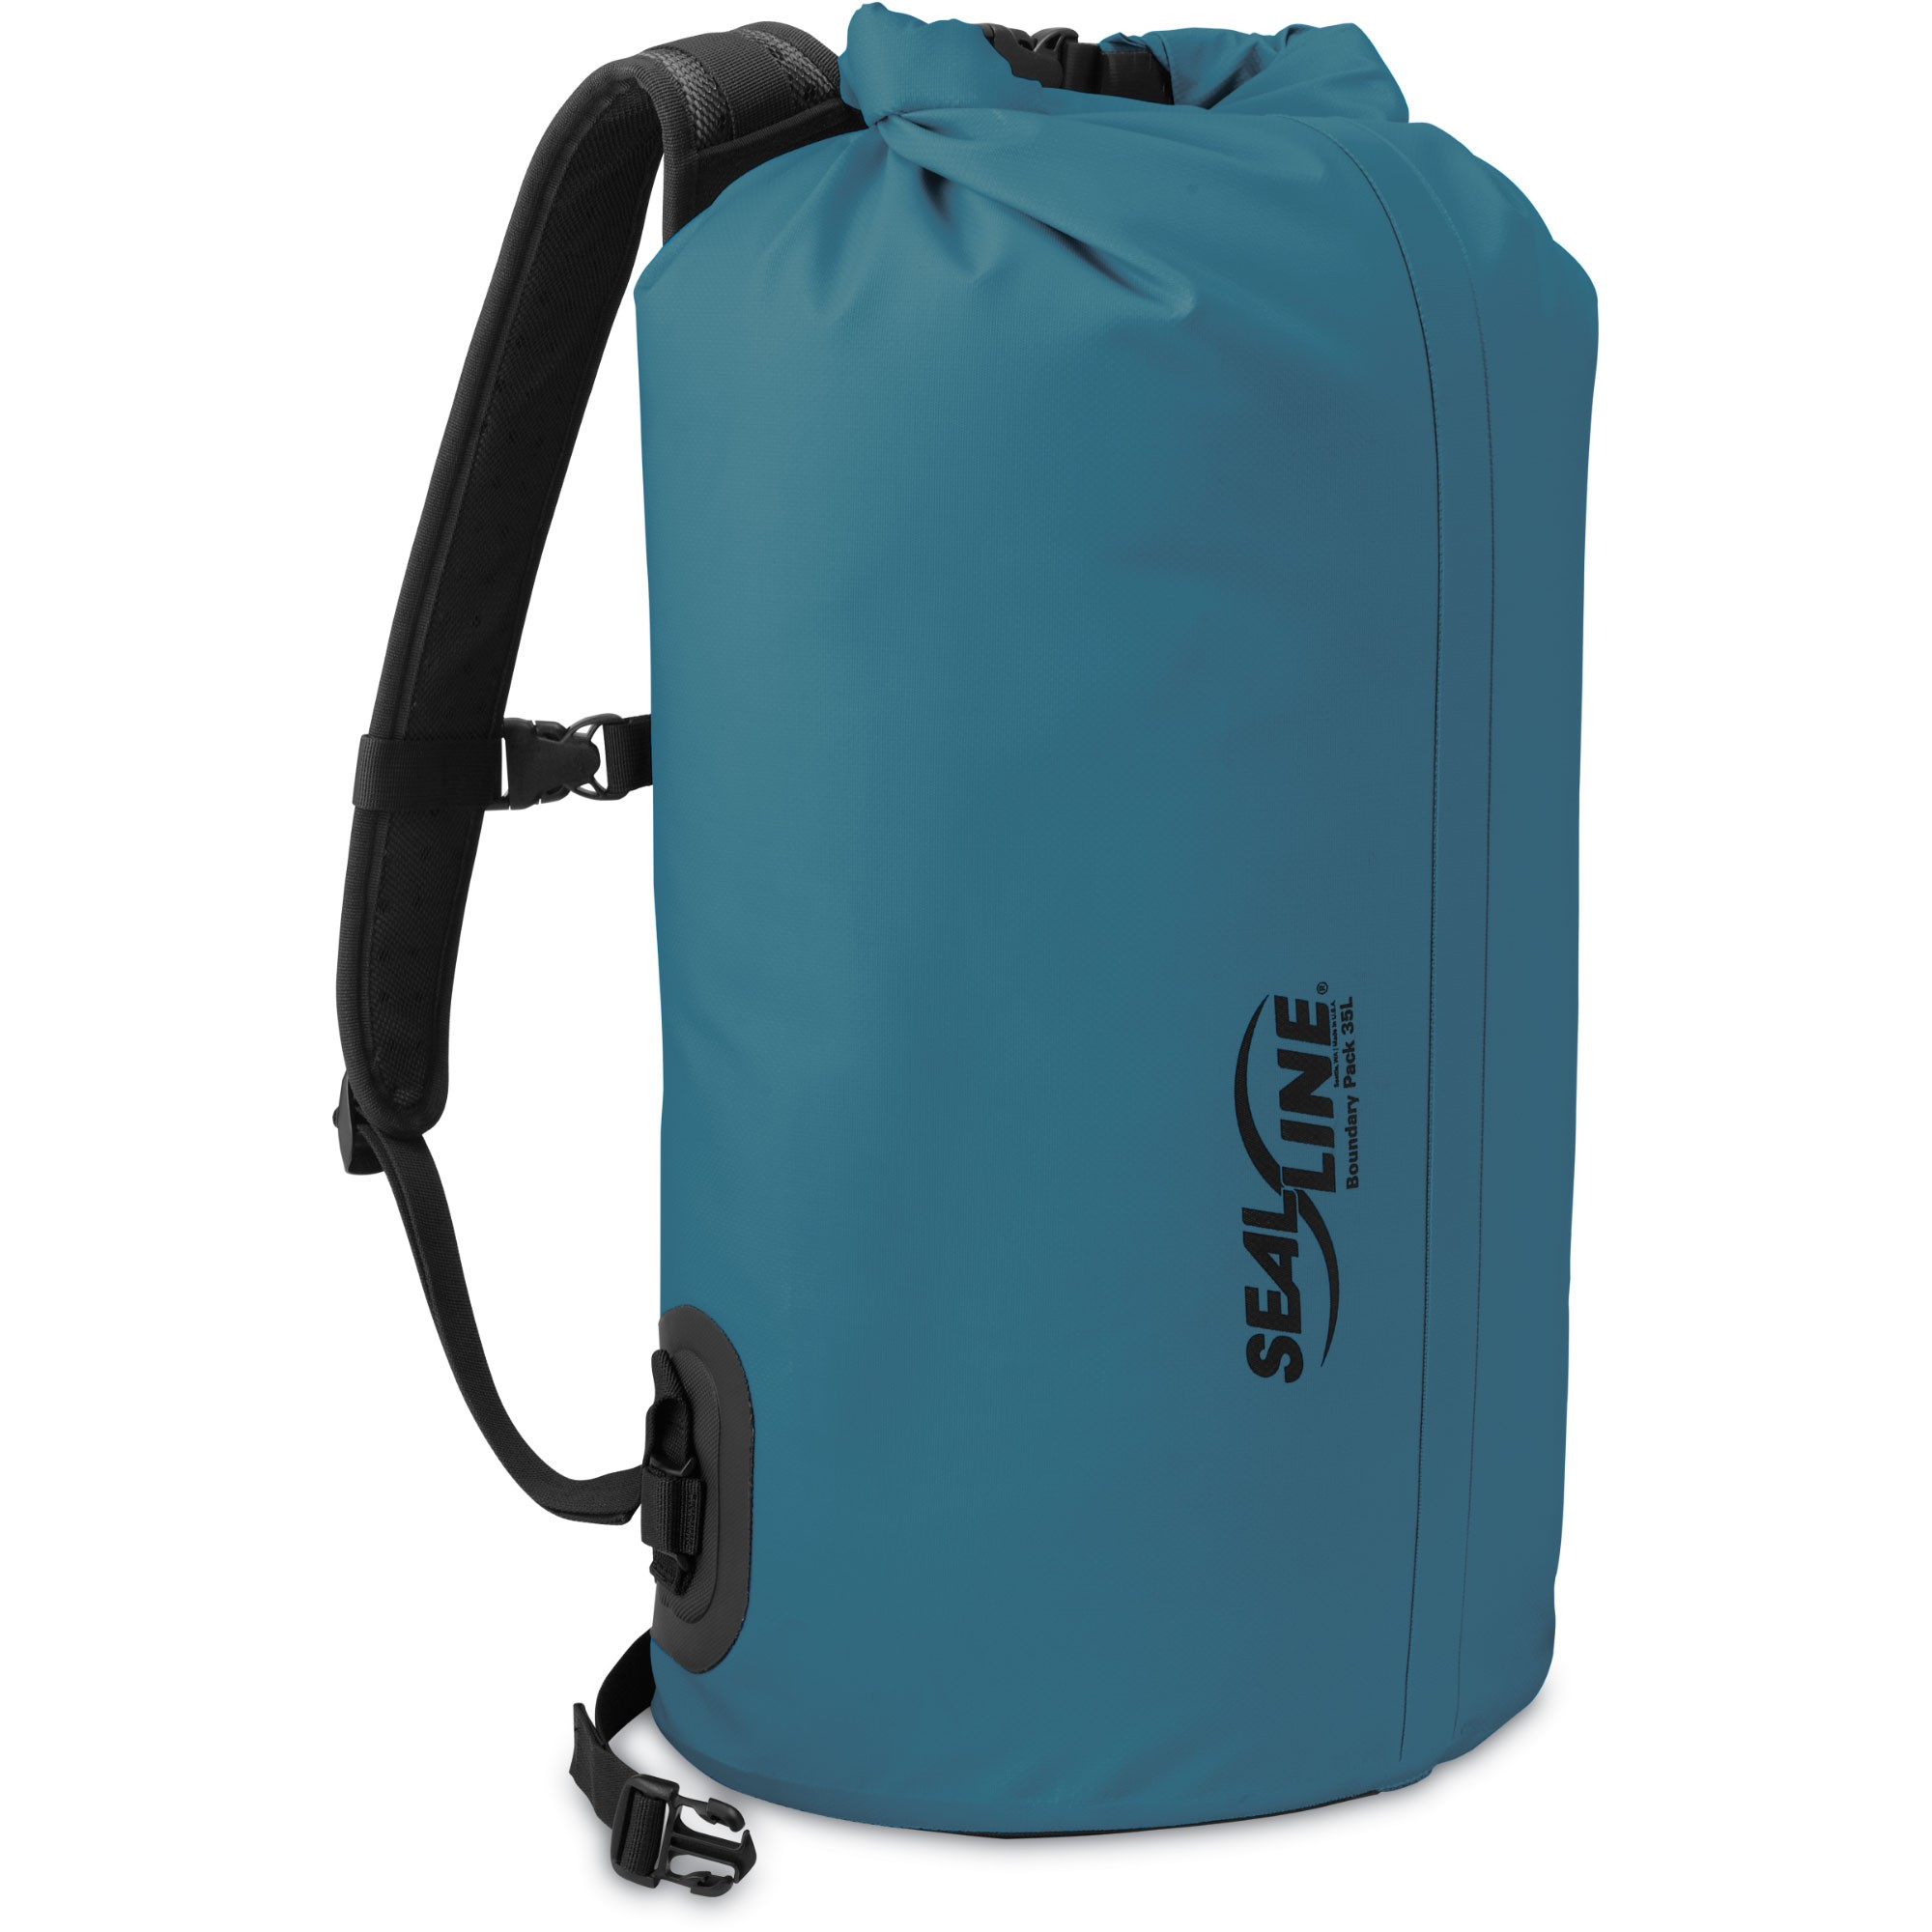 SEAL LINE - Boundary Portage Pack